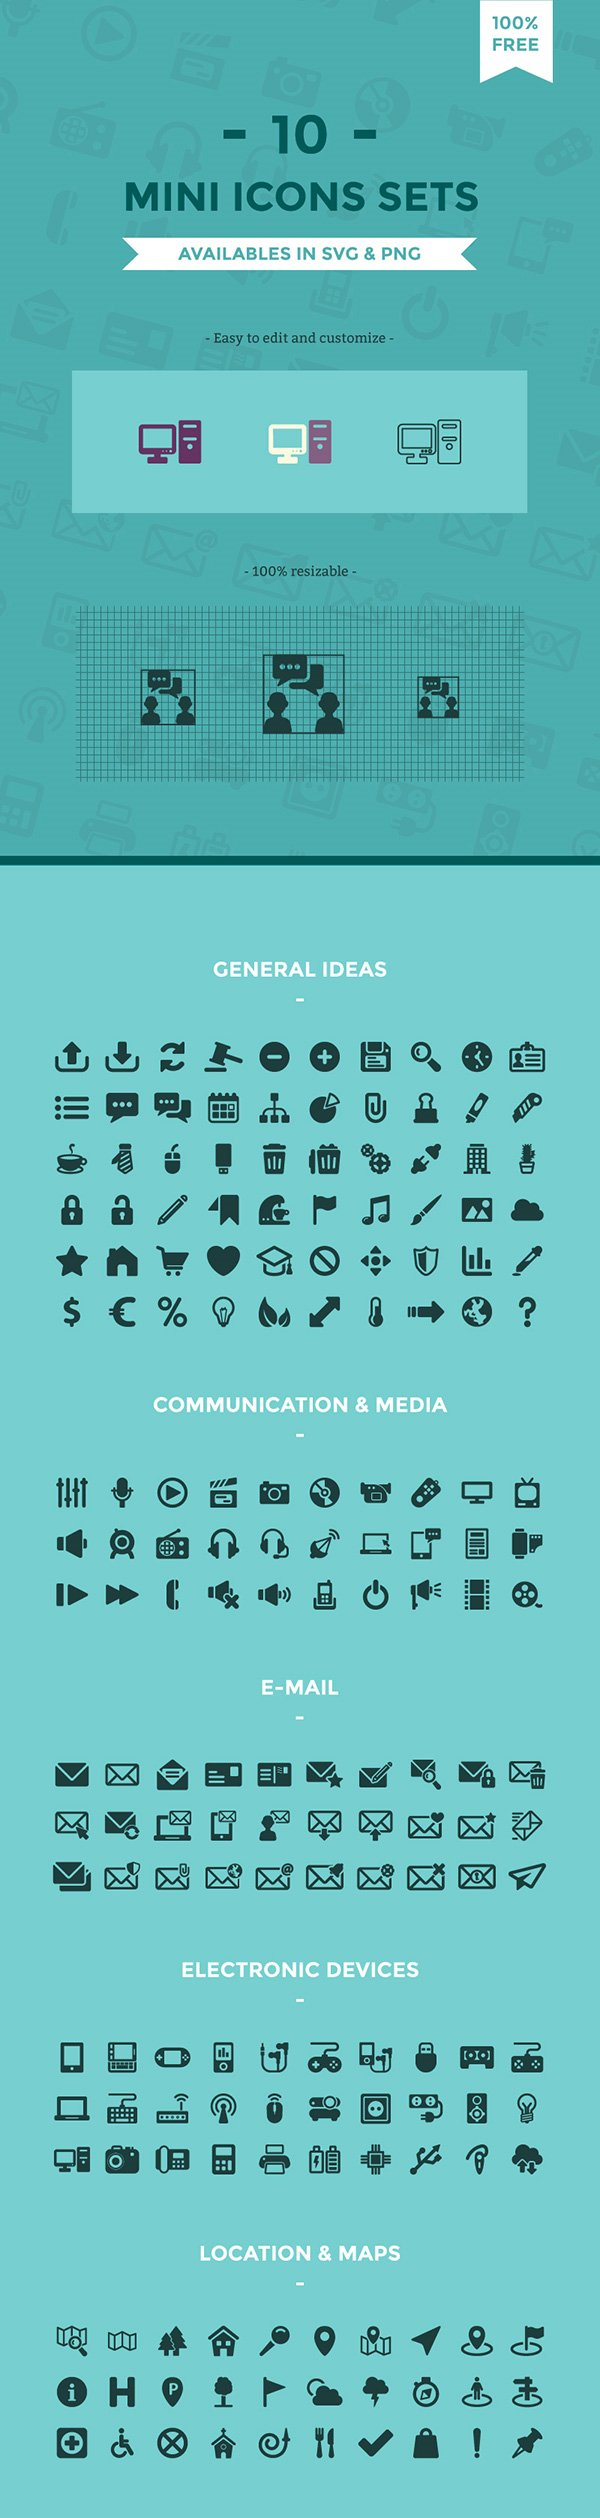 Free Minimal Icon Sets (SVG + PNG)